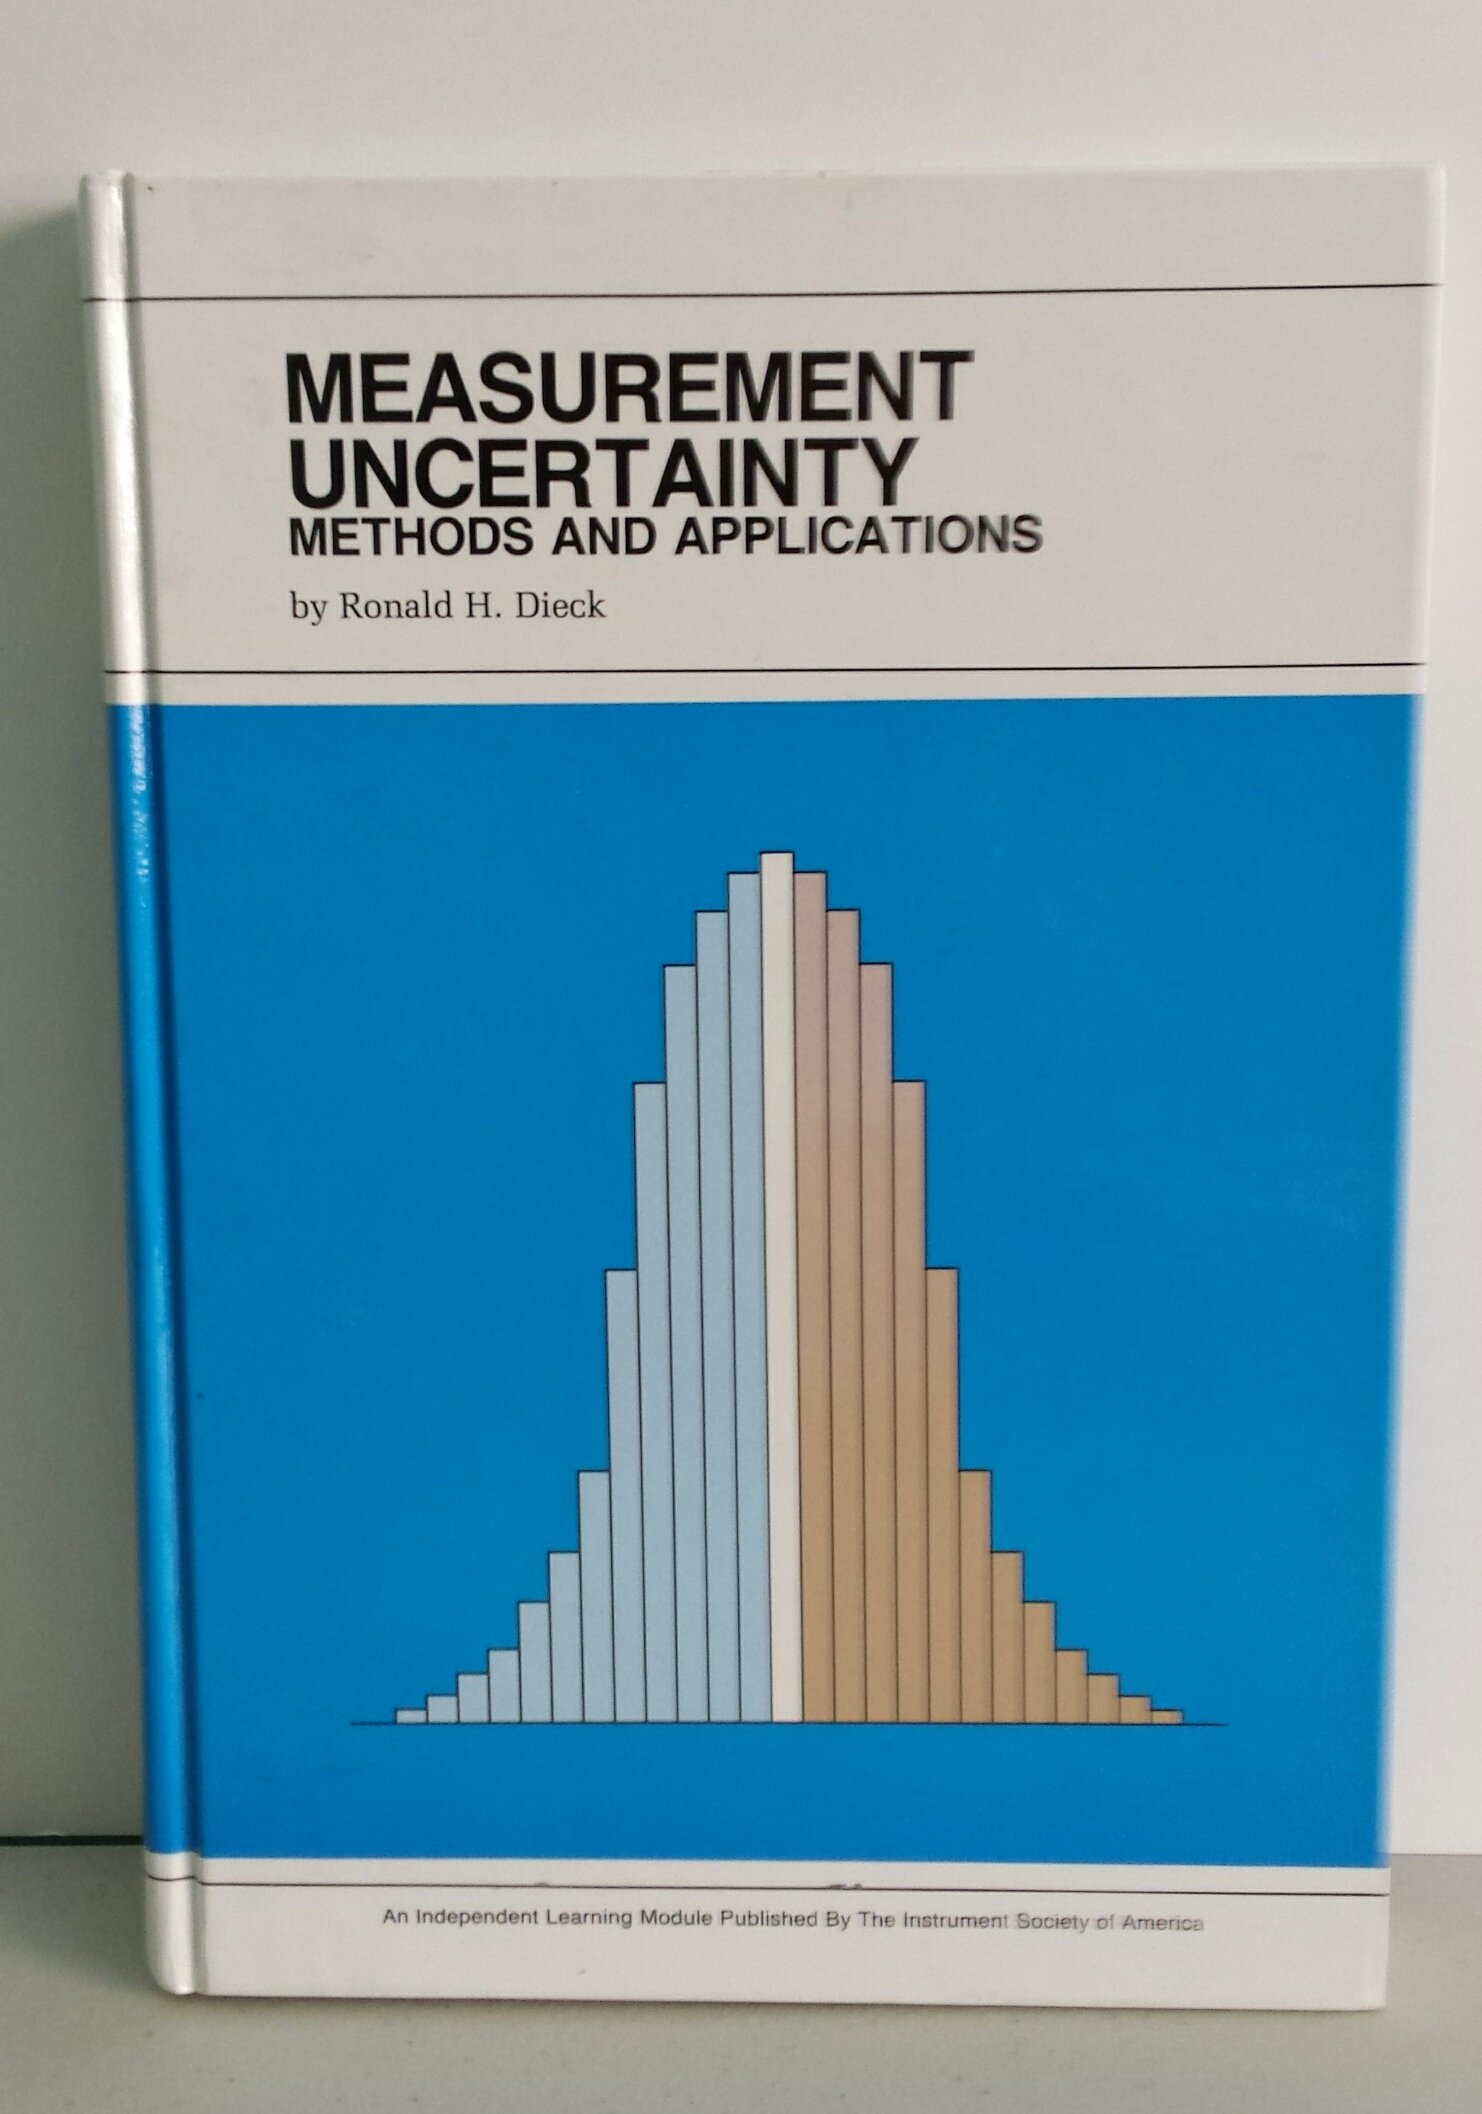 Measurement Uncertainty: Methods and Applications (INDEPENDENT LEARNING MODULE FROM THE INSTRUMENT SOCIETY OF AMERICA)